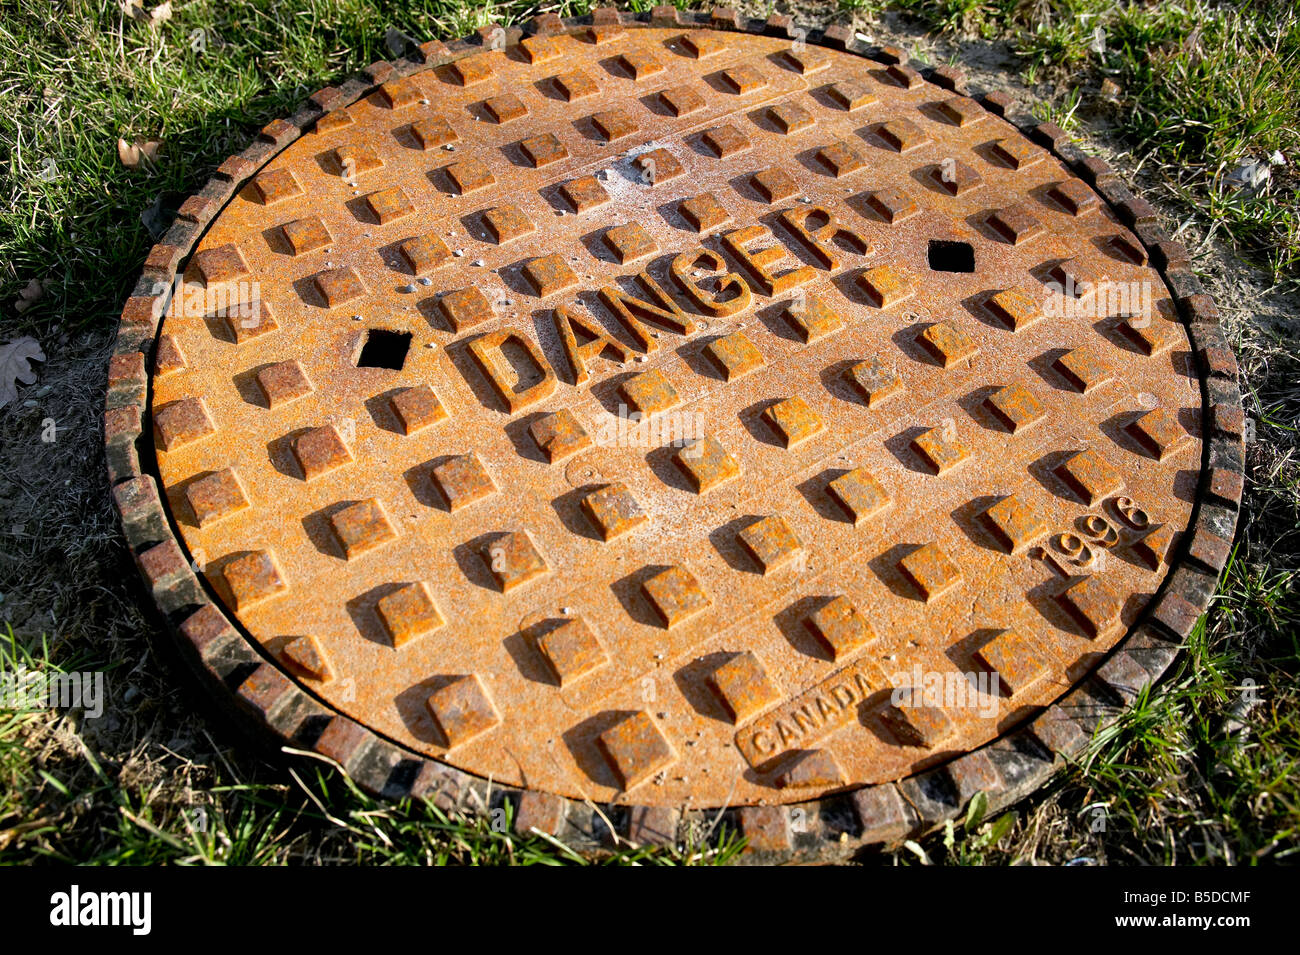 rusted manhole sewer cover reading the word Danger - Stock Image